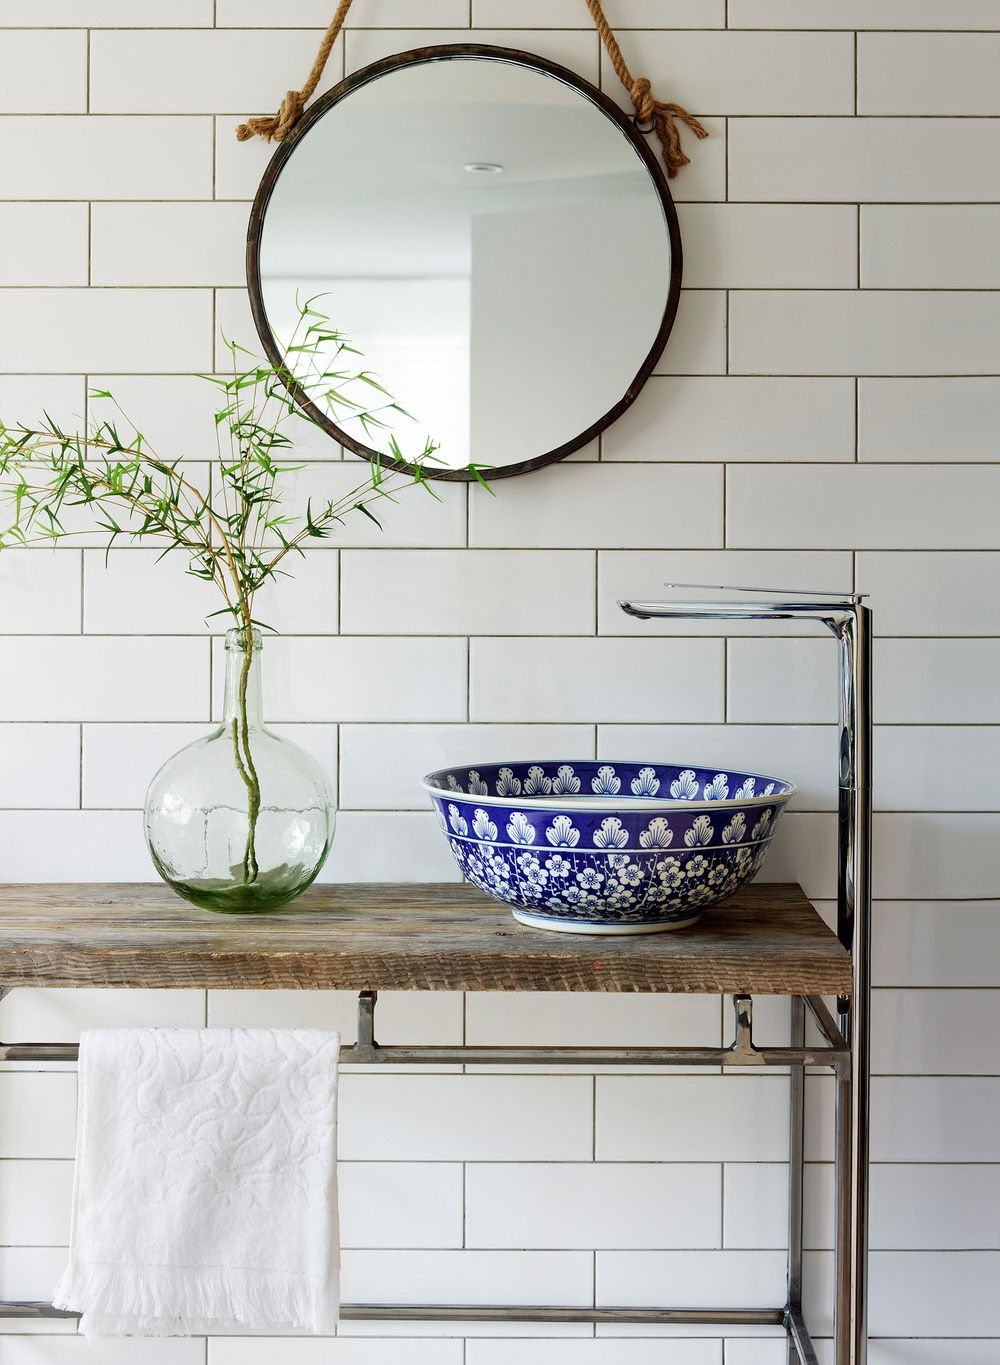 These stunning washbasins are designed by the London Basin Company. They have a range of diverse designs and they are all so deliciously tactile and curvaceous and make a real statement in the bathroom.